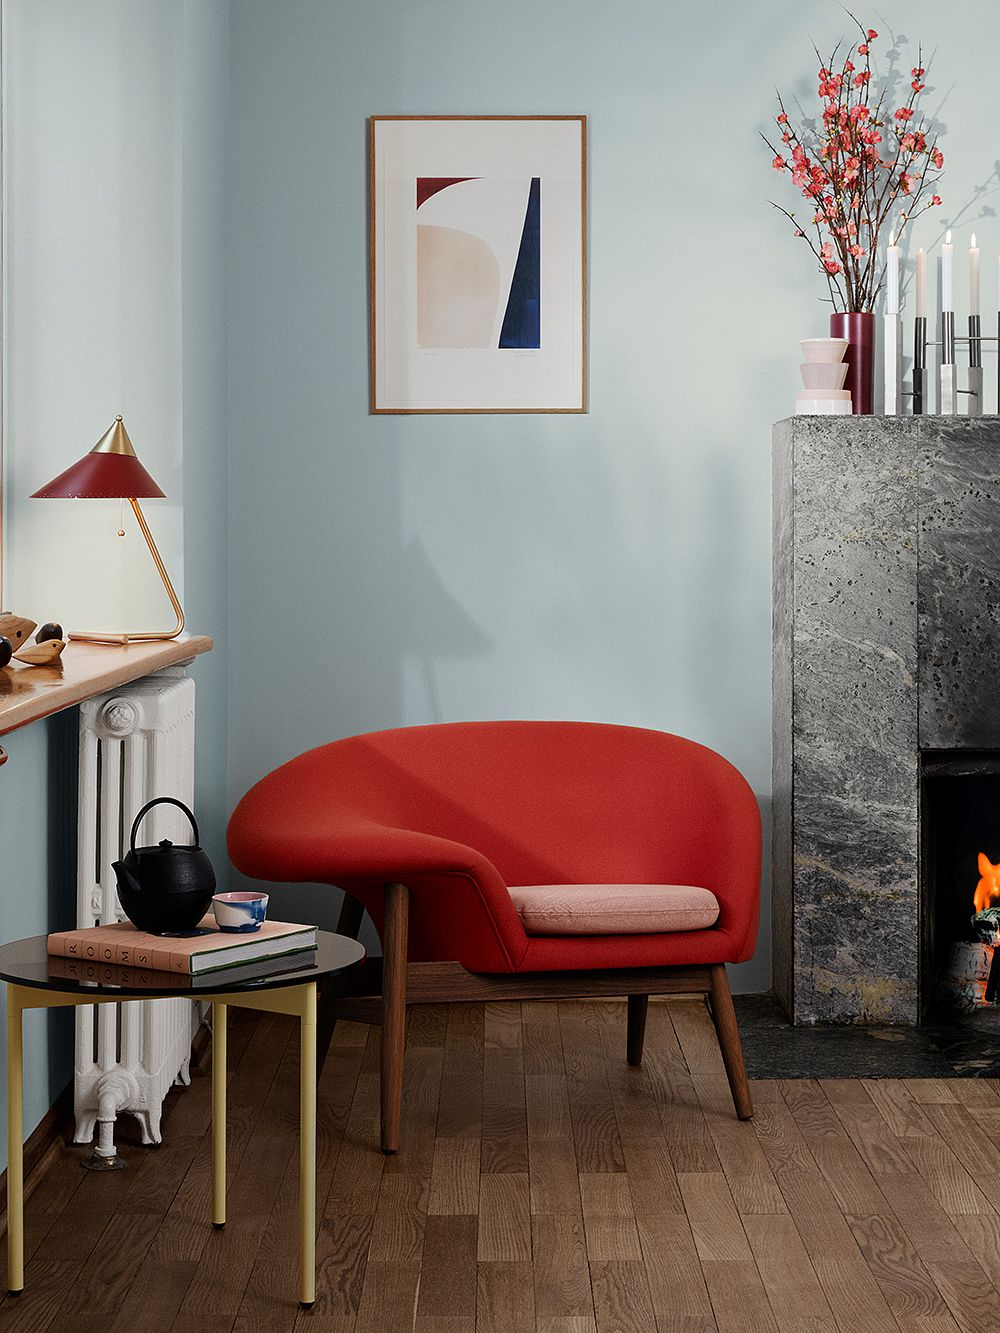 Warm Nordic's Fried Egg chair and Brass Top table lamp in a living room setting.